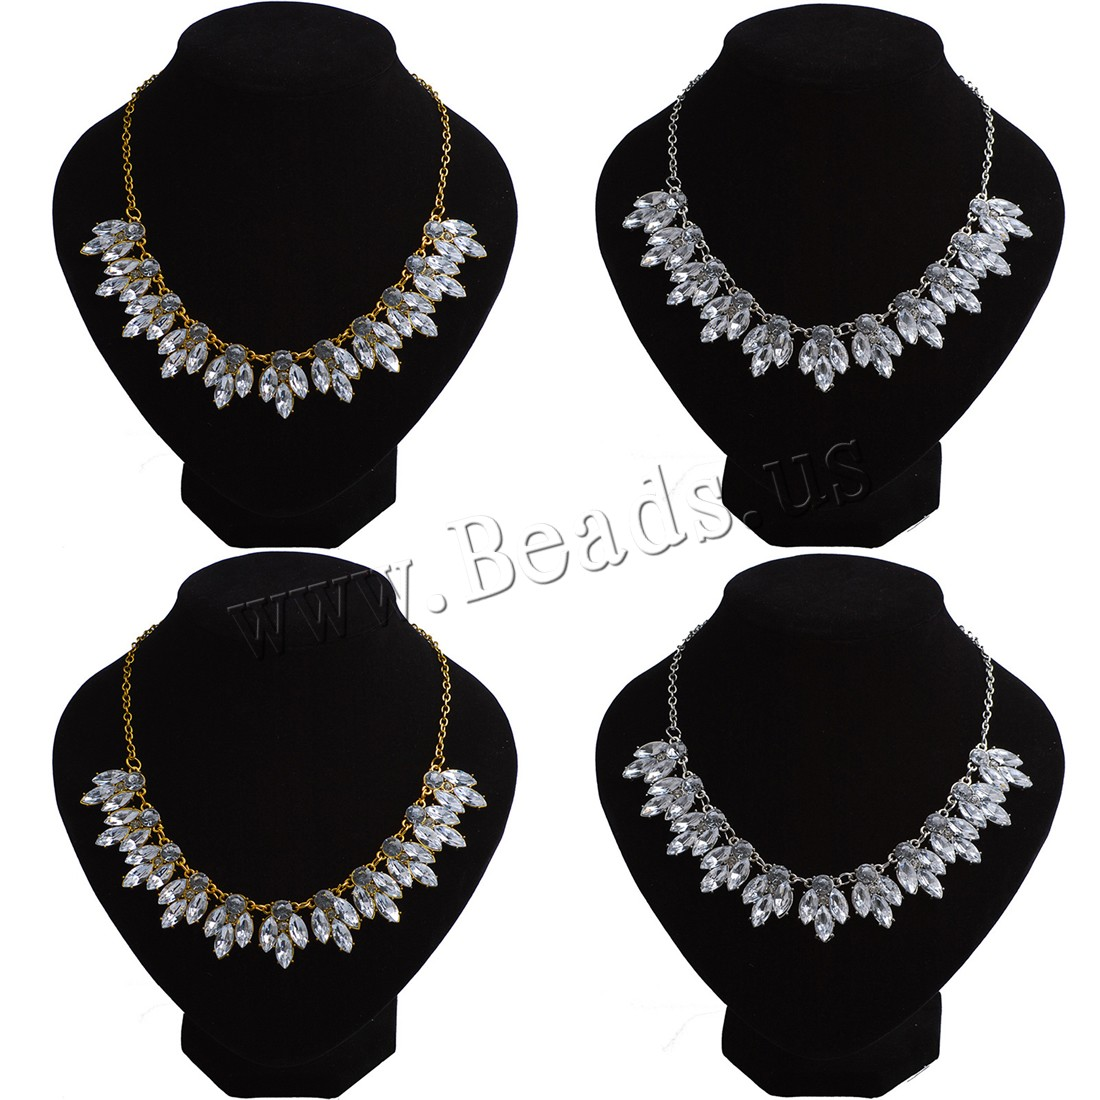 Buy Crystal Necklace Zinc Alloy Crystal 2inch extender chain plated oval chain & woman & faceted colors choice nickel lead & cadmium free Sold Per Approx 16.5 Inch Strand